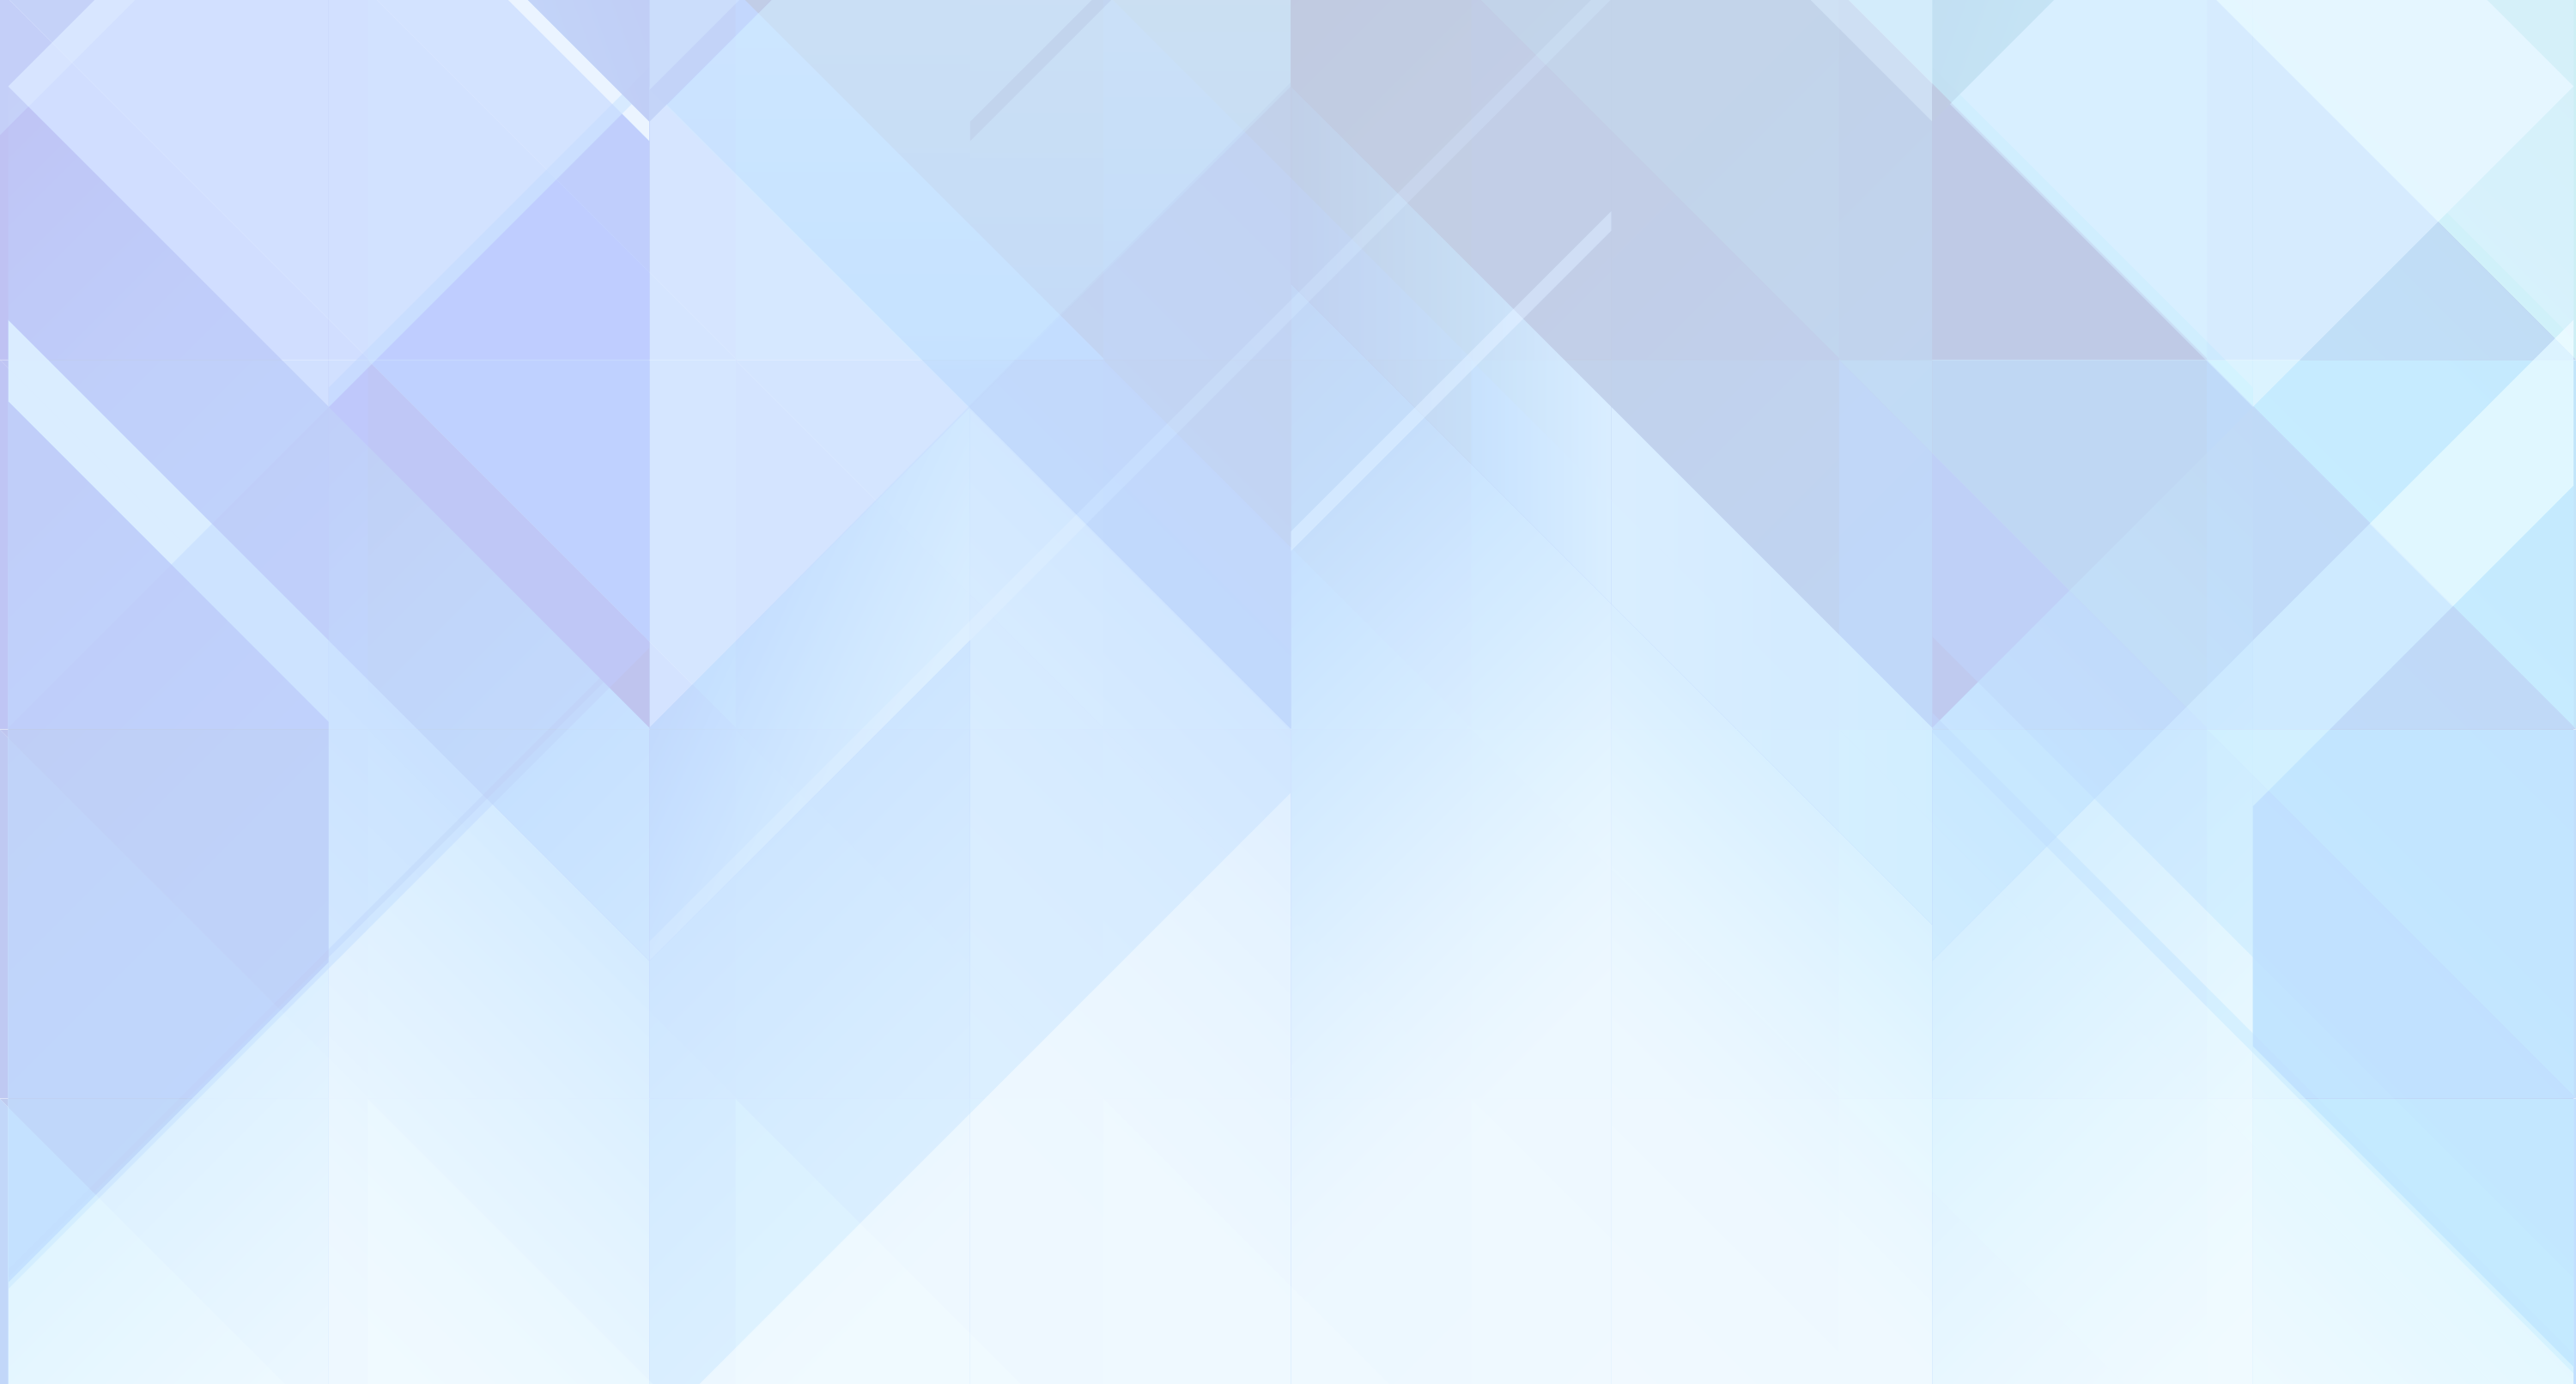 Abstract backgrounds png. Transparent background check all